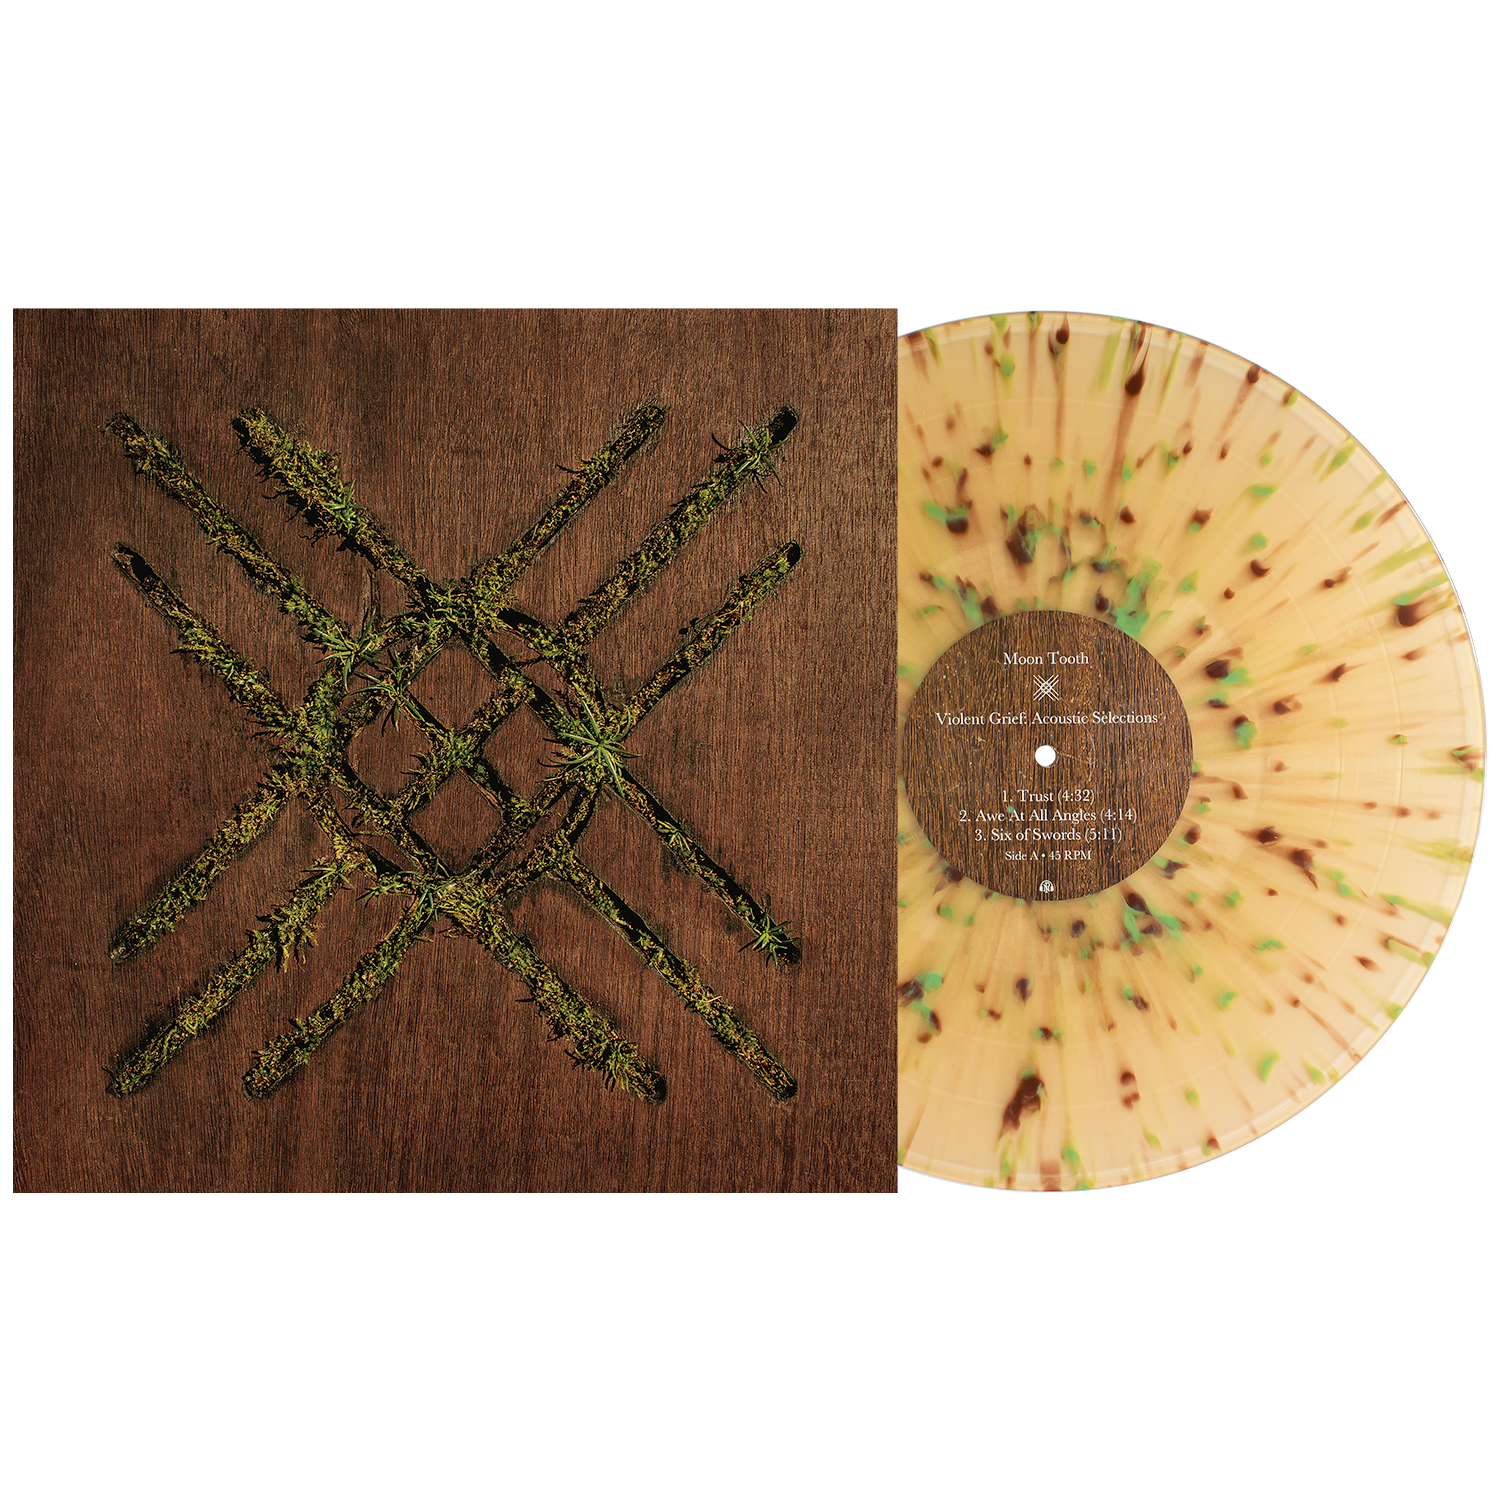 Moon Tooth 'Violent Grief: Acoustic Selections' LP (Various - Beer w/ Heavy Brown & Olive Splatter)